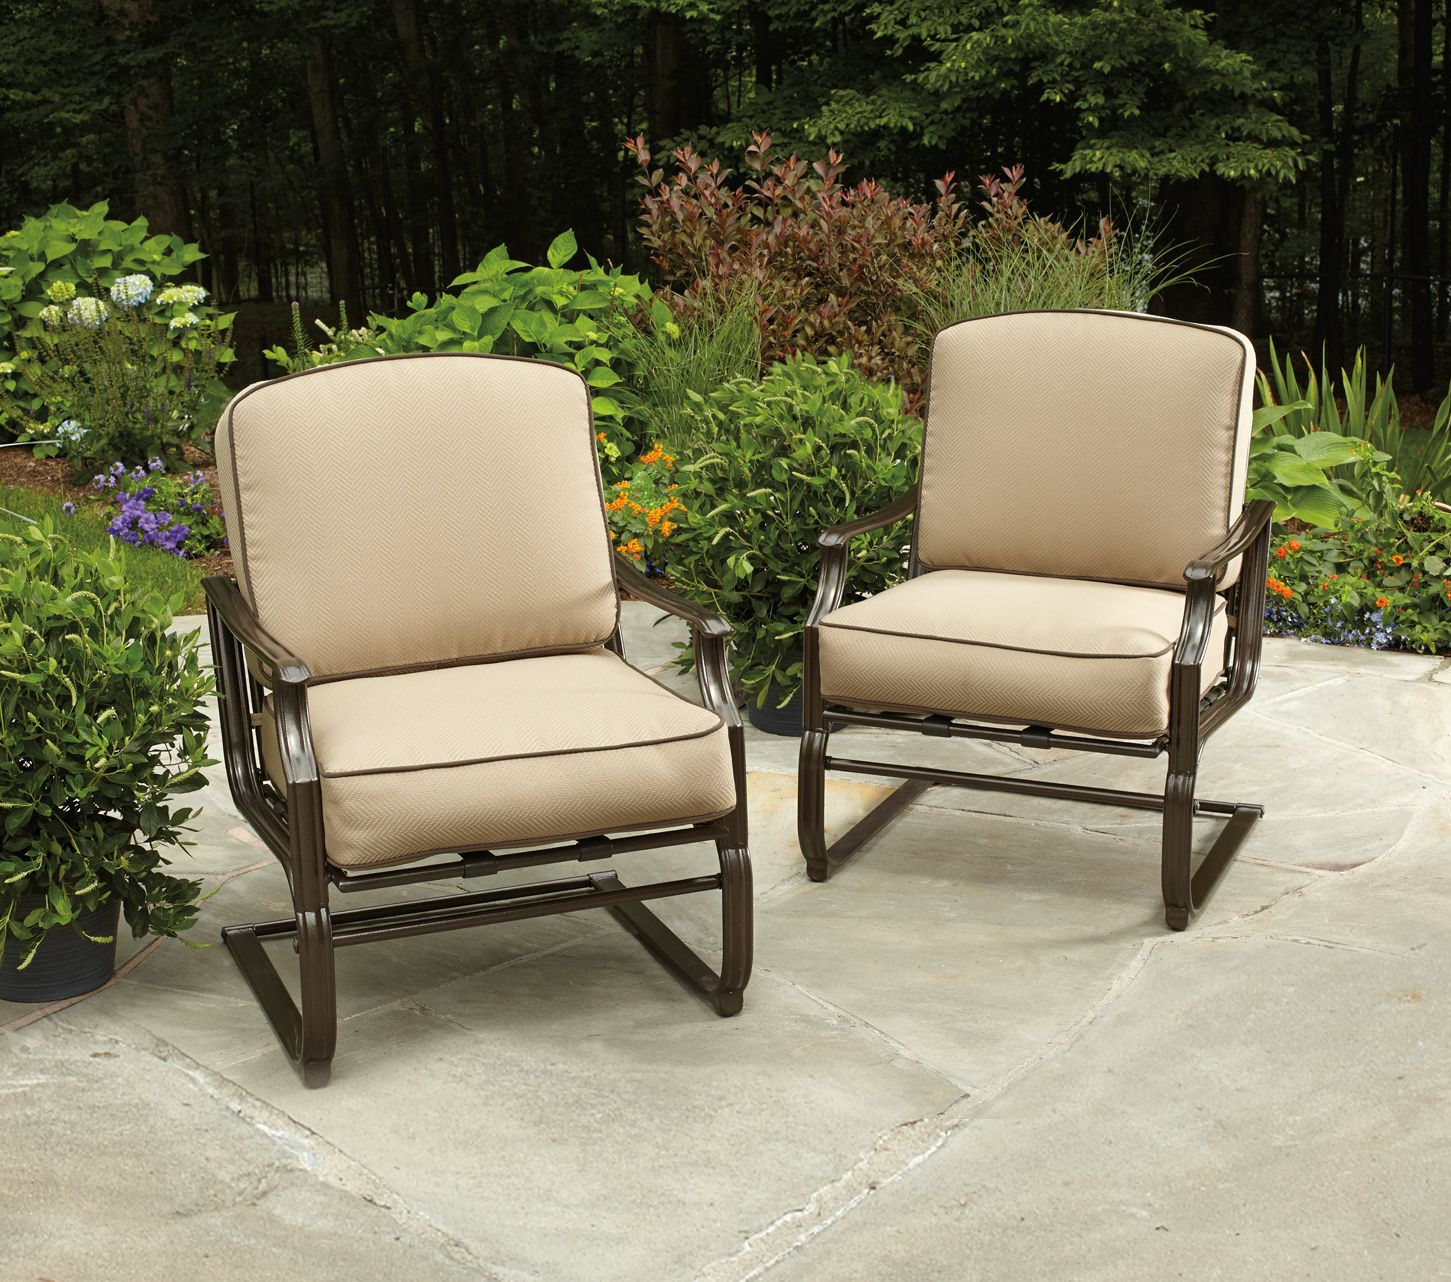 Castelle Patio Furniture Costa Rica Patio Chairs Patio Outdoor Chairs